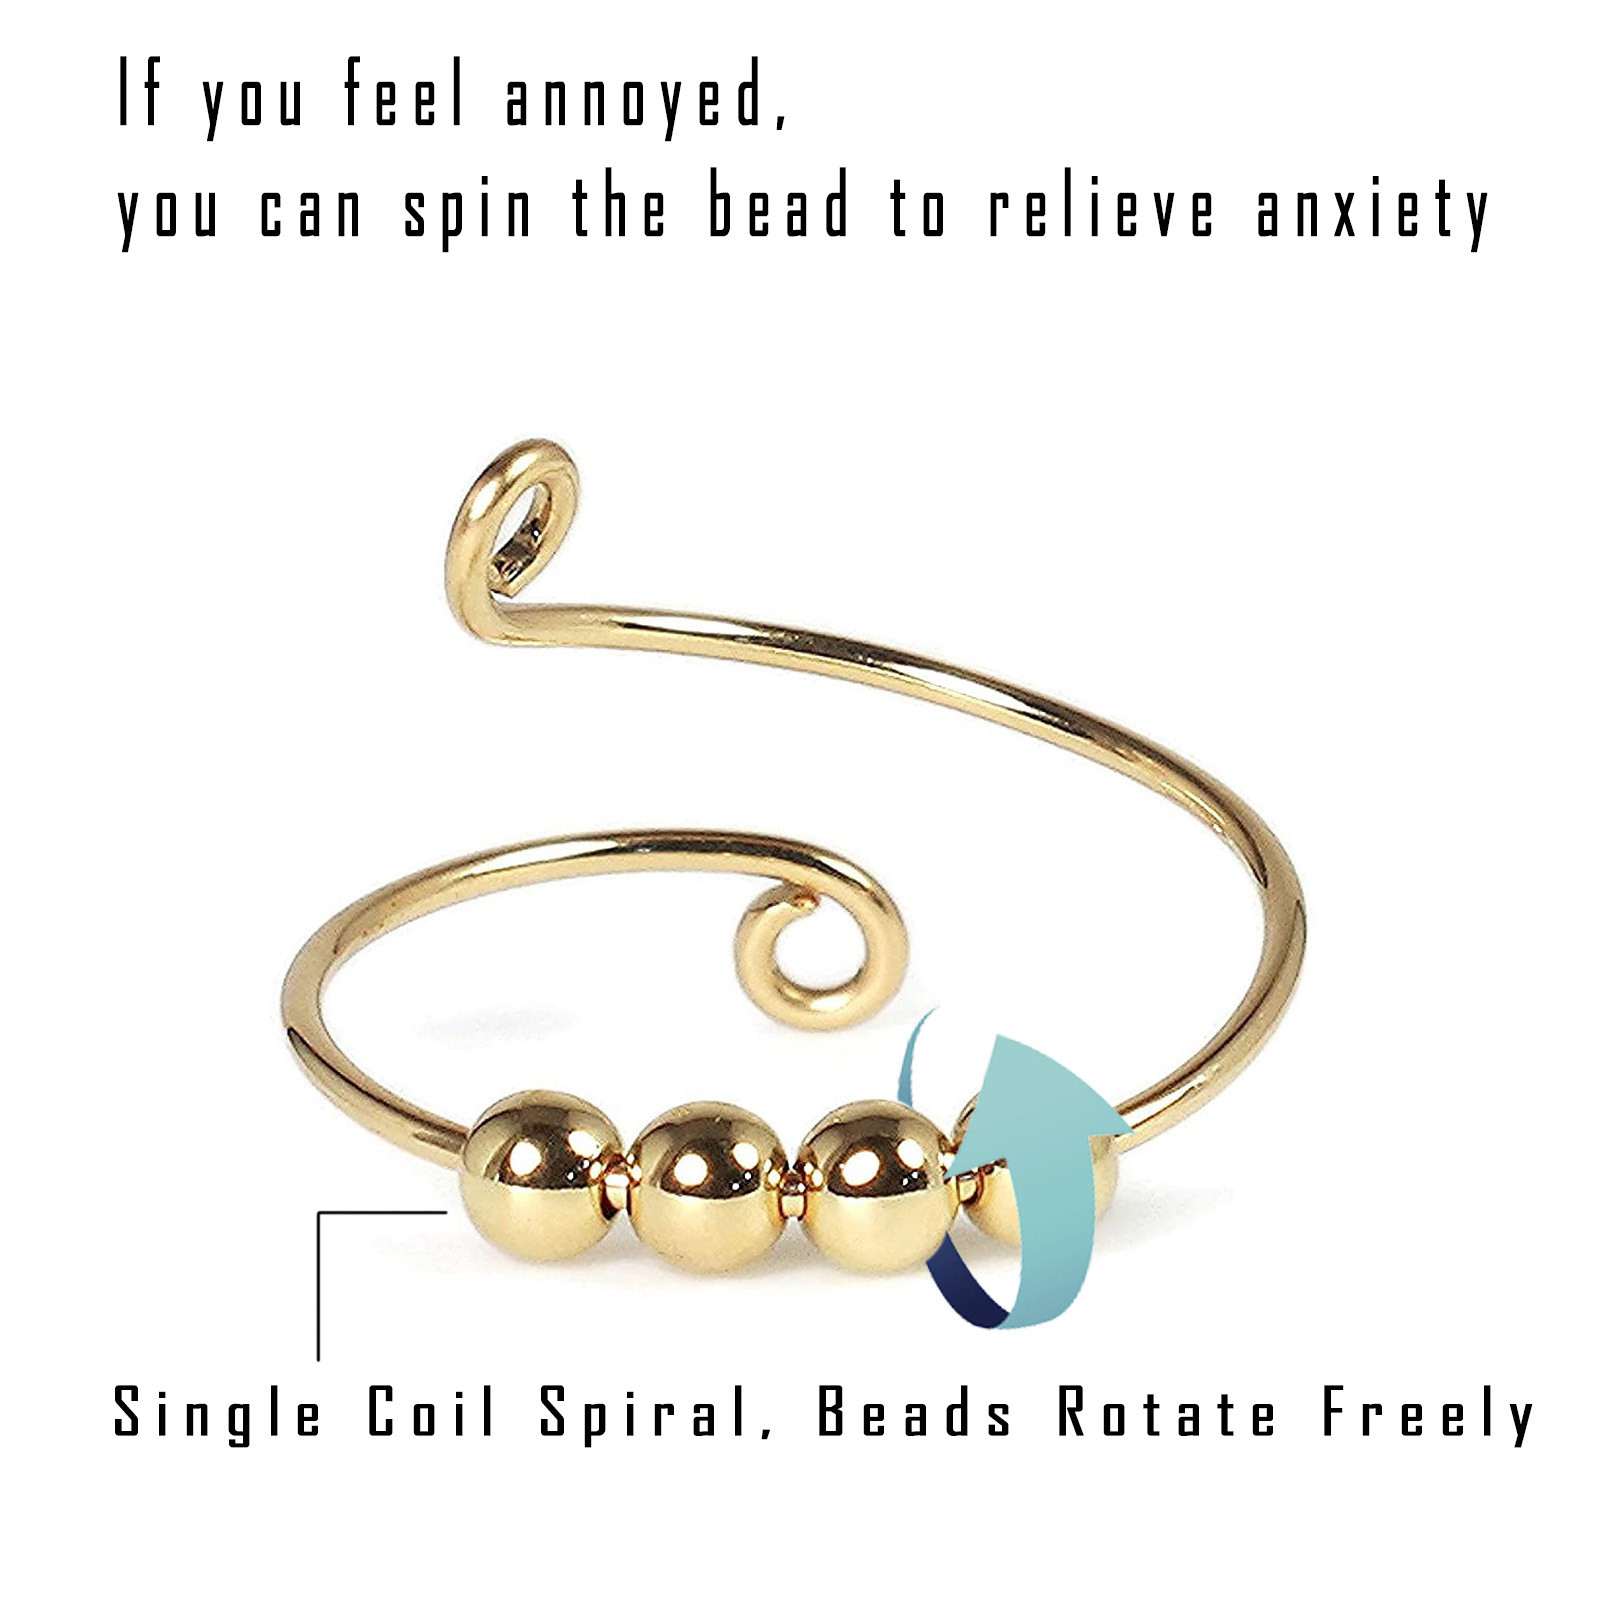 Toy Ring-Beads Fidget-Ring Freely Stress Spiral-Anxiety Rotate Reliever Fingertip Knitting img2